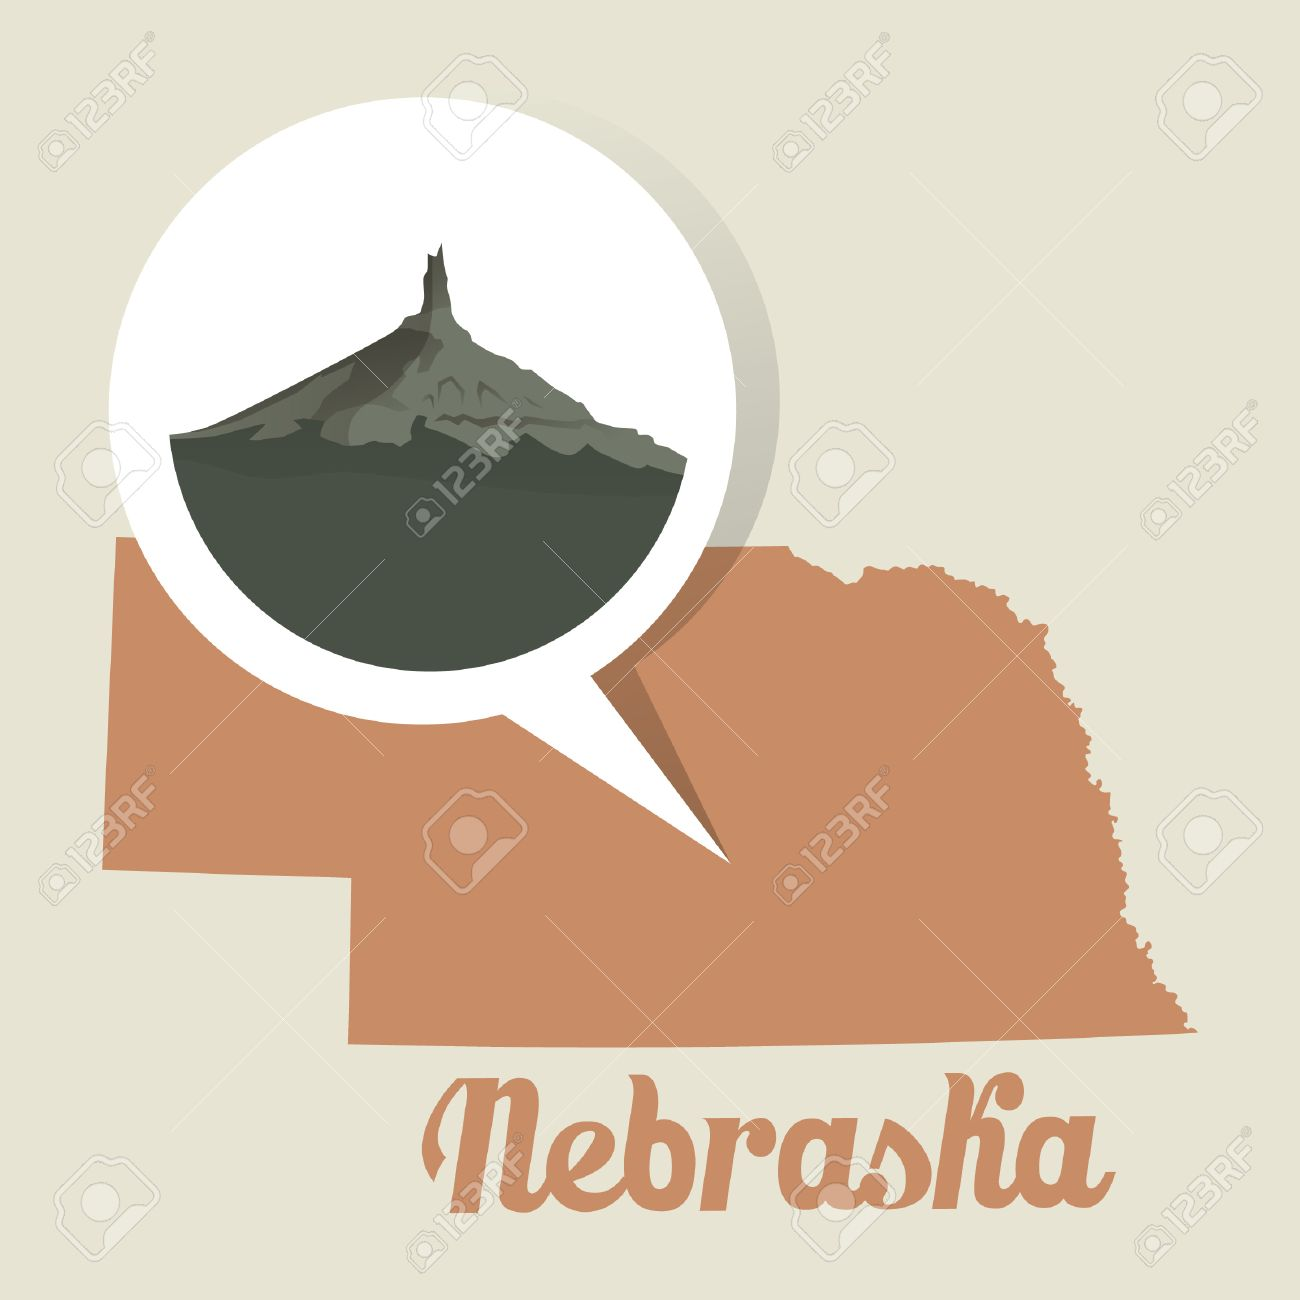 Nebraska Map With Chimney Rock Icon Royalty Free Cliparts Vectors